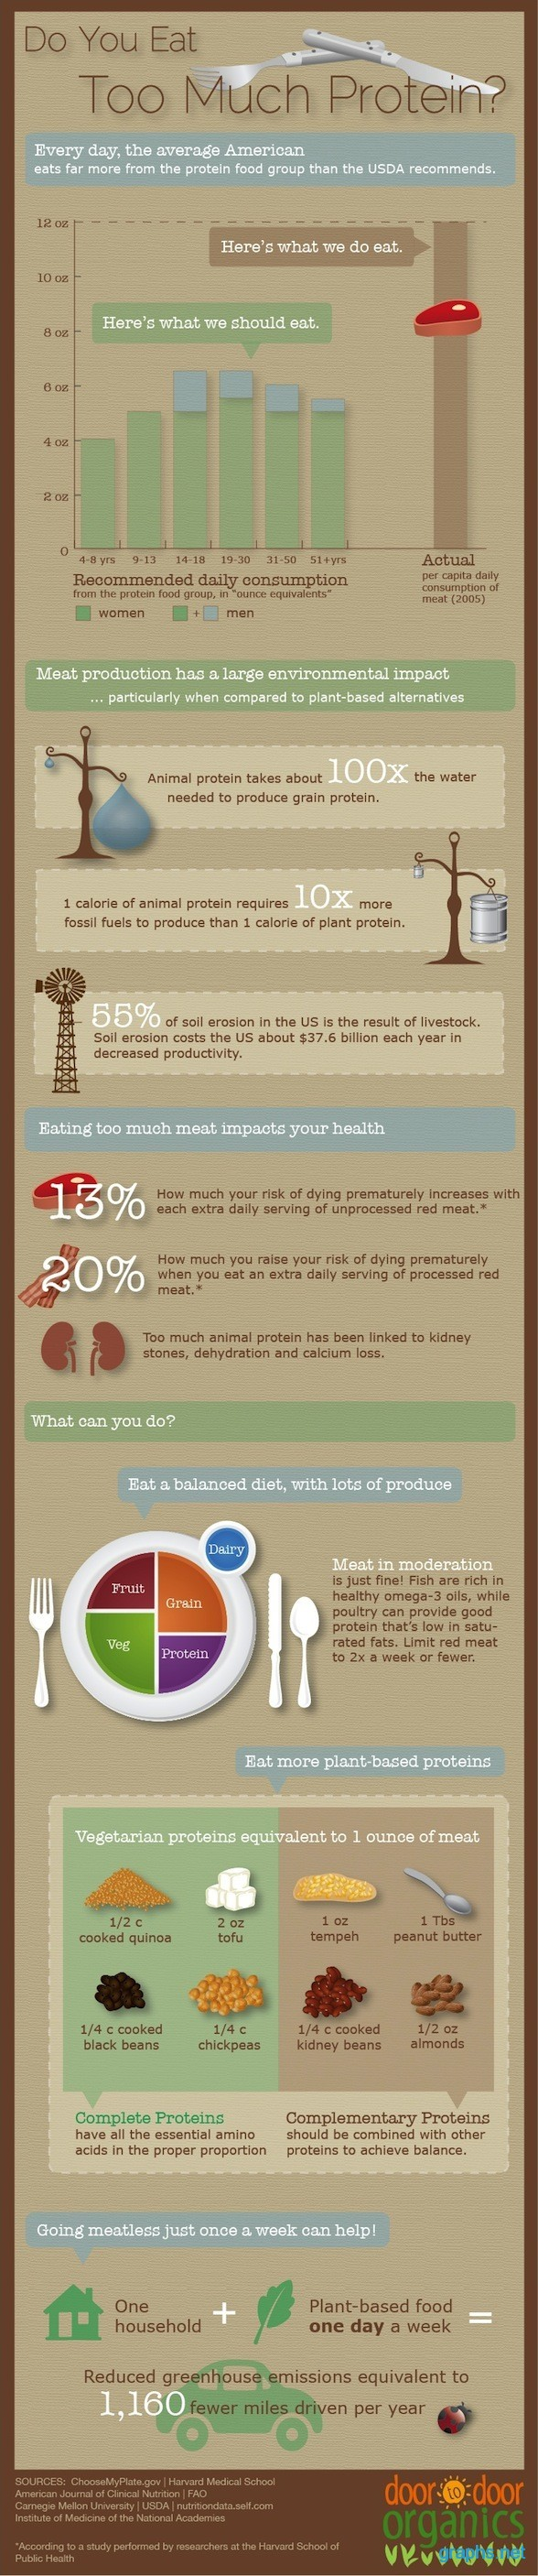 How Much Protein Do You Need To Eat